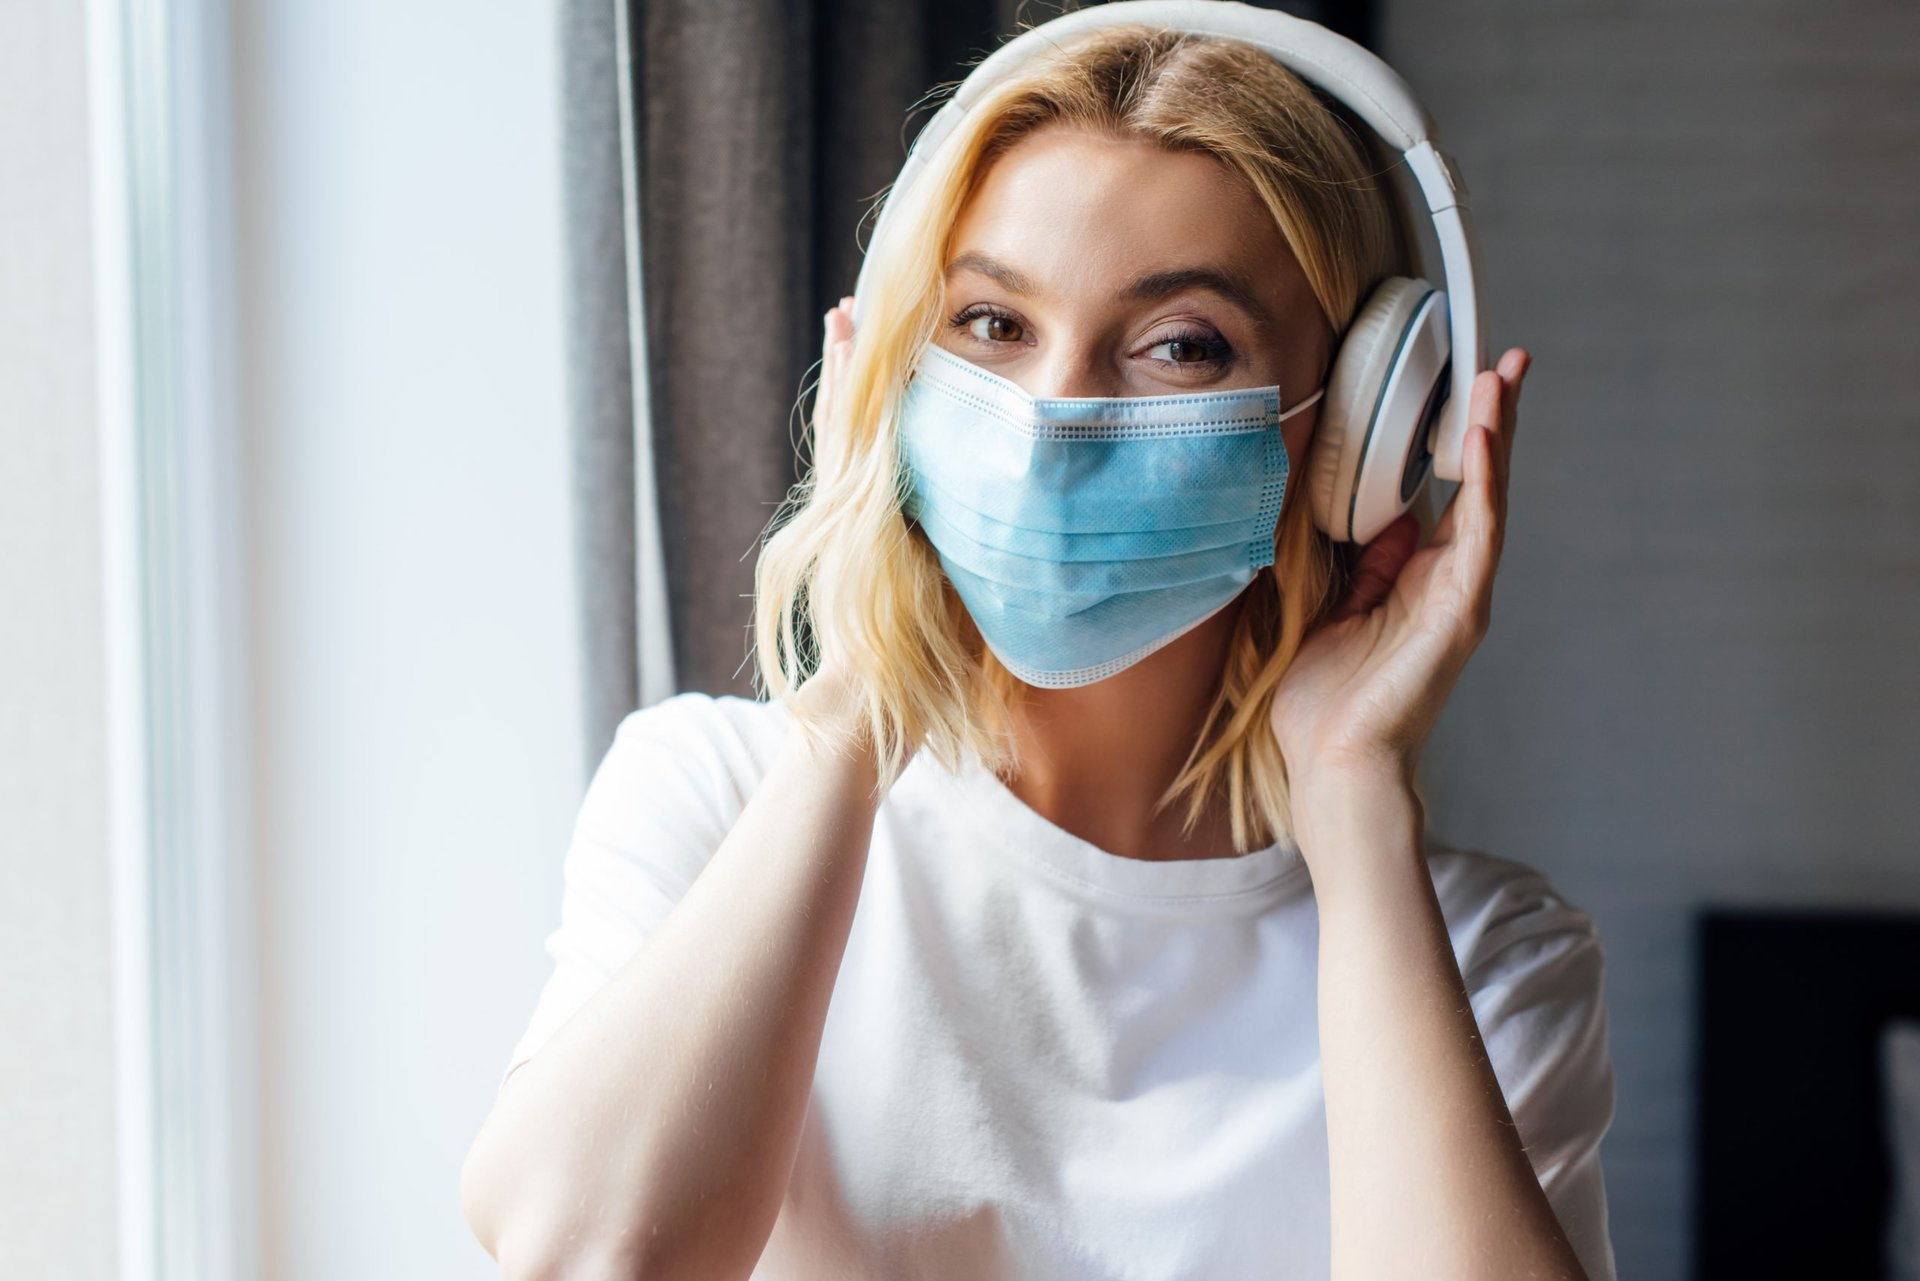 Woman in a mask and headphones